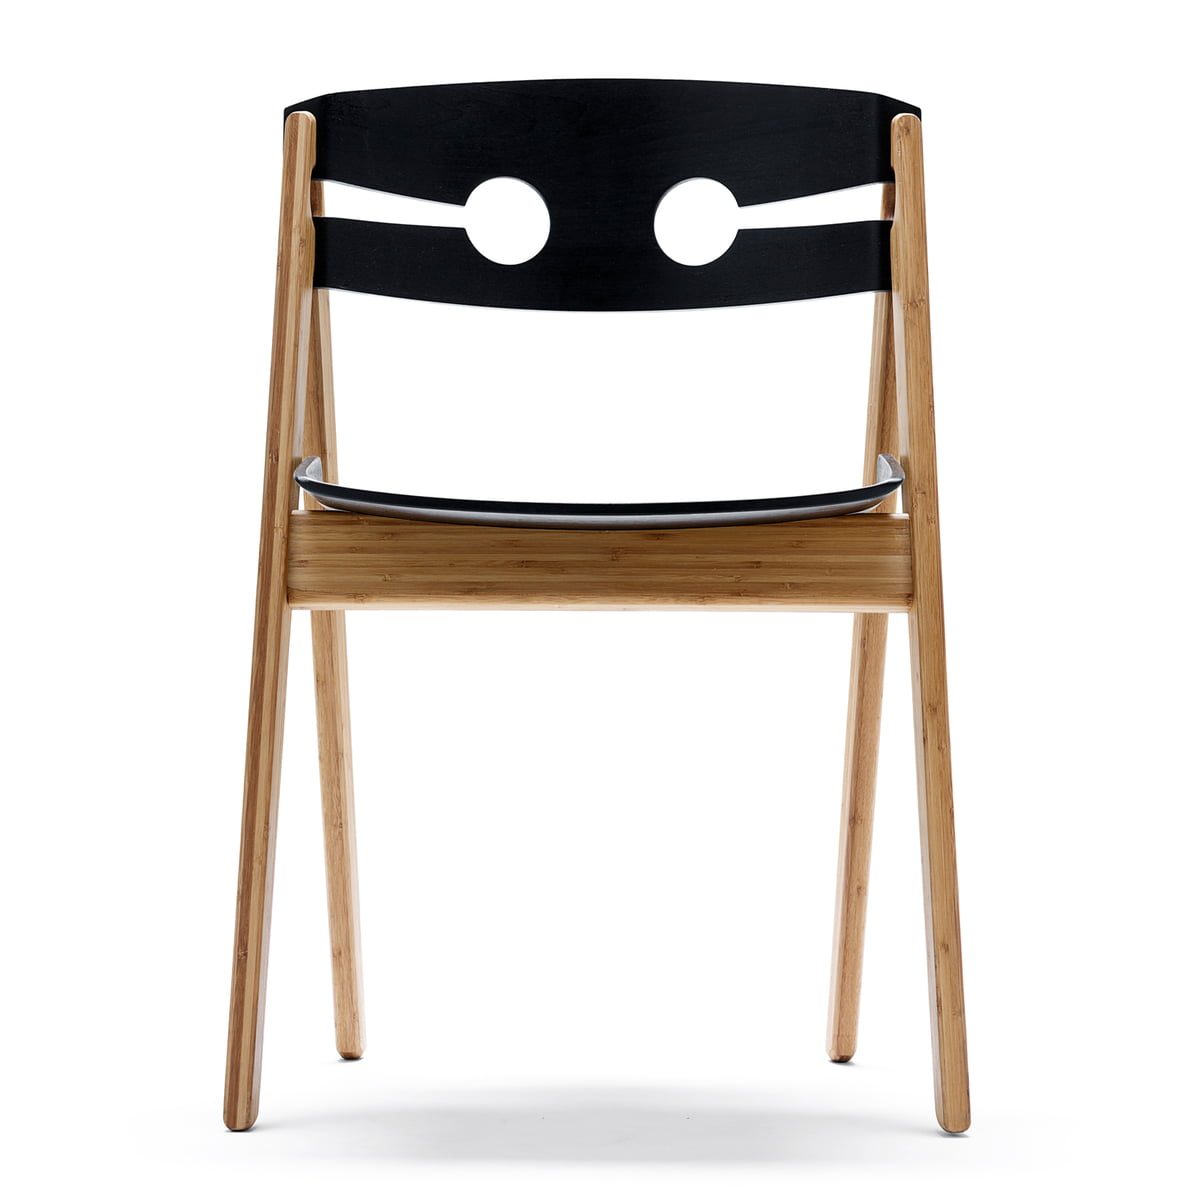 Wooden chair front view - We Do Wood Dining Chair No 1 Black Front View